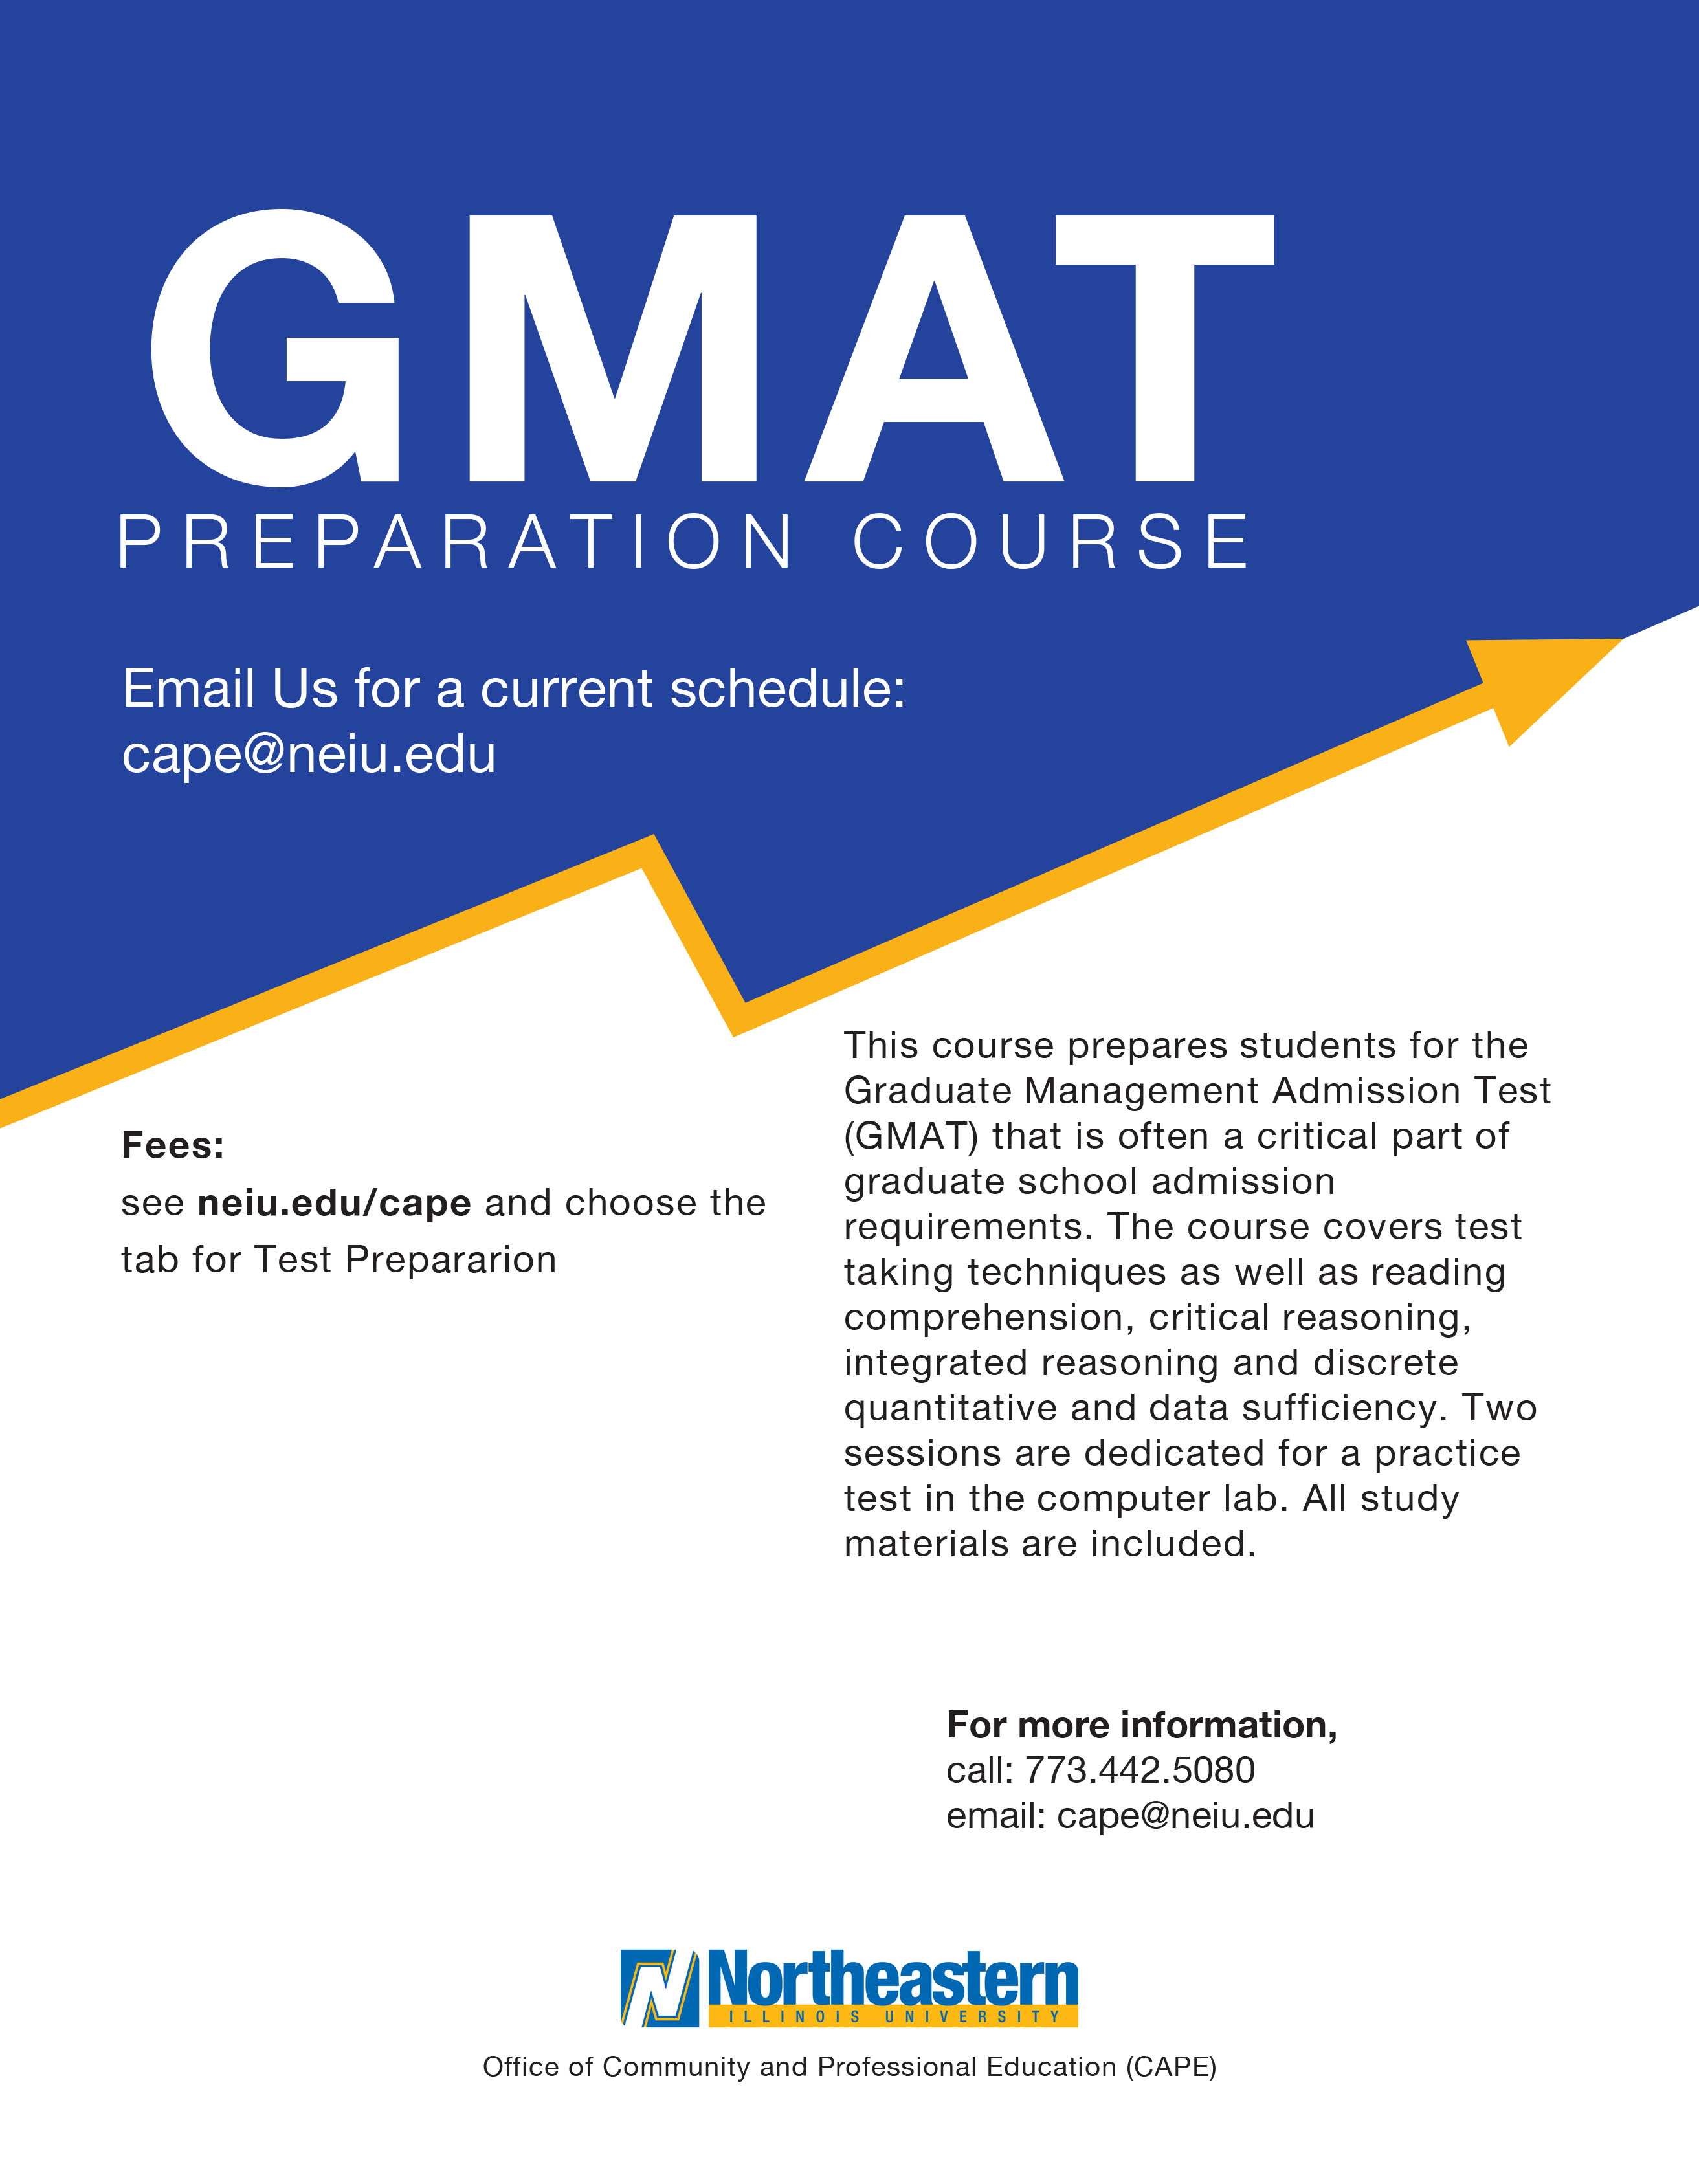 GMAT Preparation Course Flyer